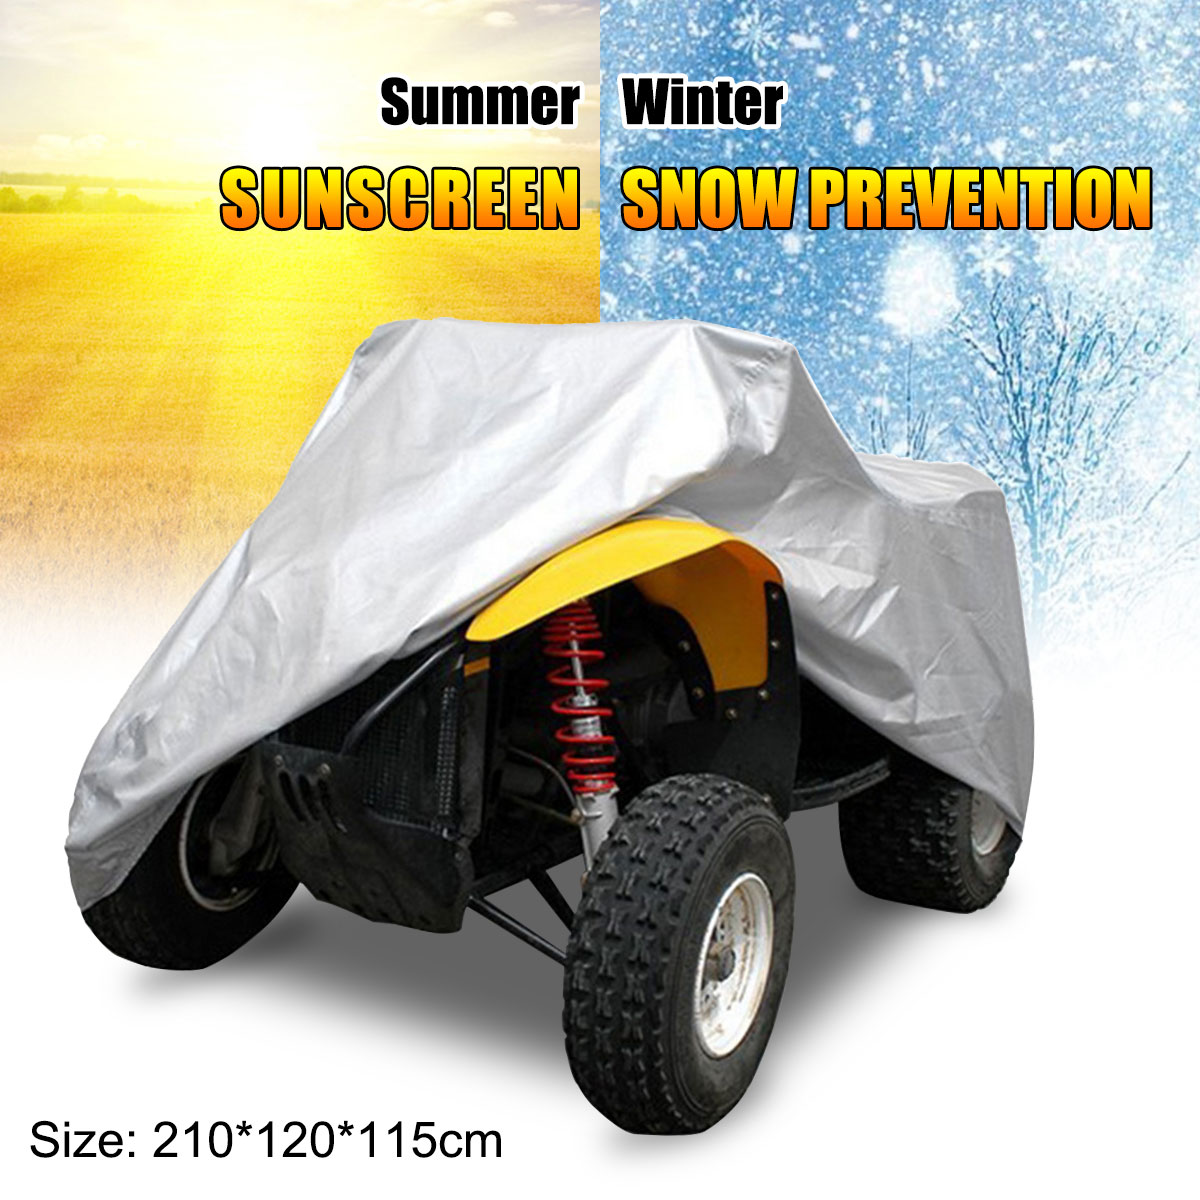 190T Waterproof UV Heatproof Quad Bike Tractor ATV Cover Anti UV Rain Lawn Mower ATV Car Cover + Bag XL Large 210x120x115cm|  - title=